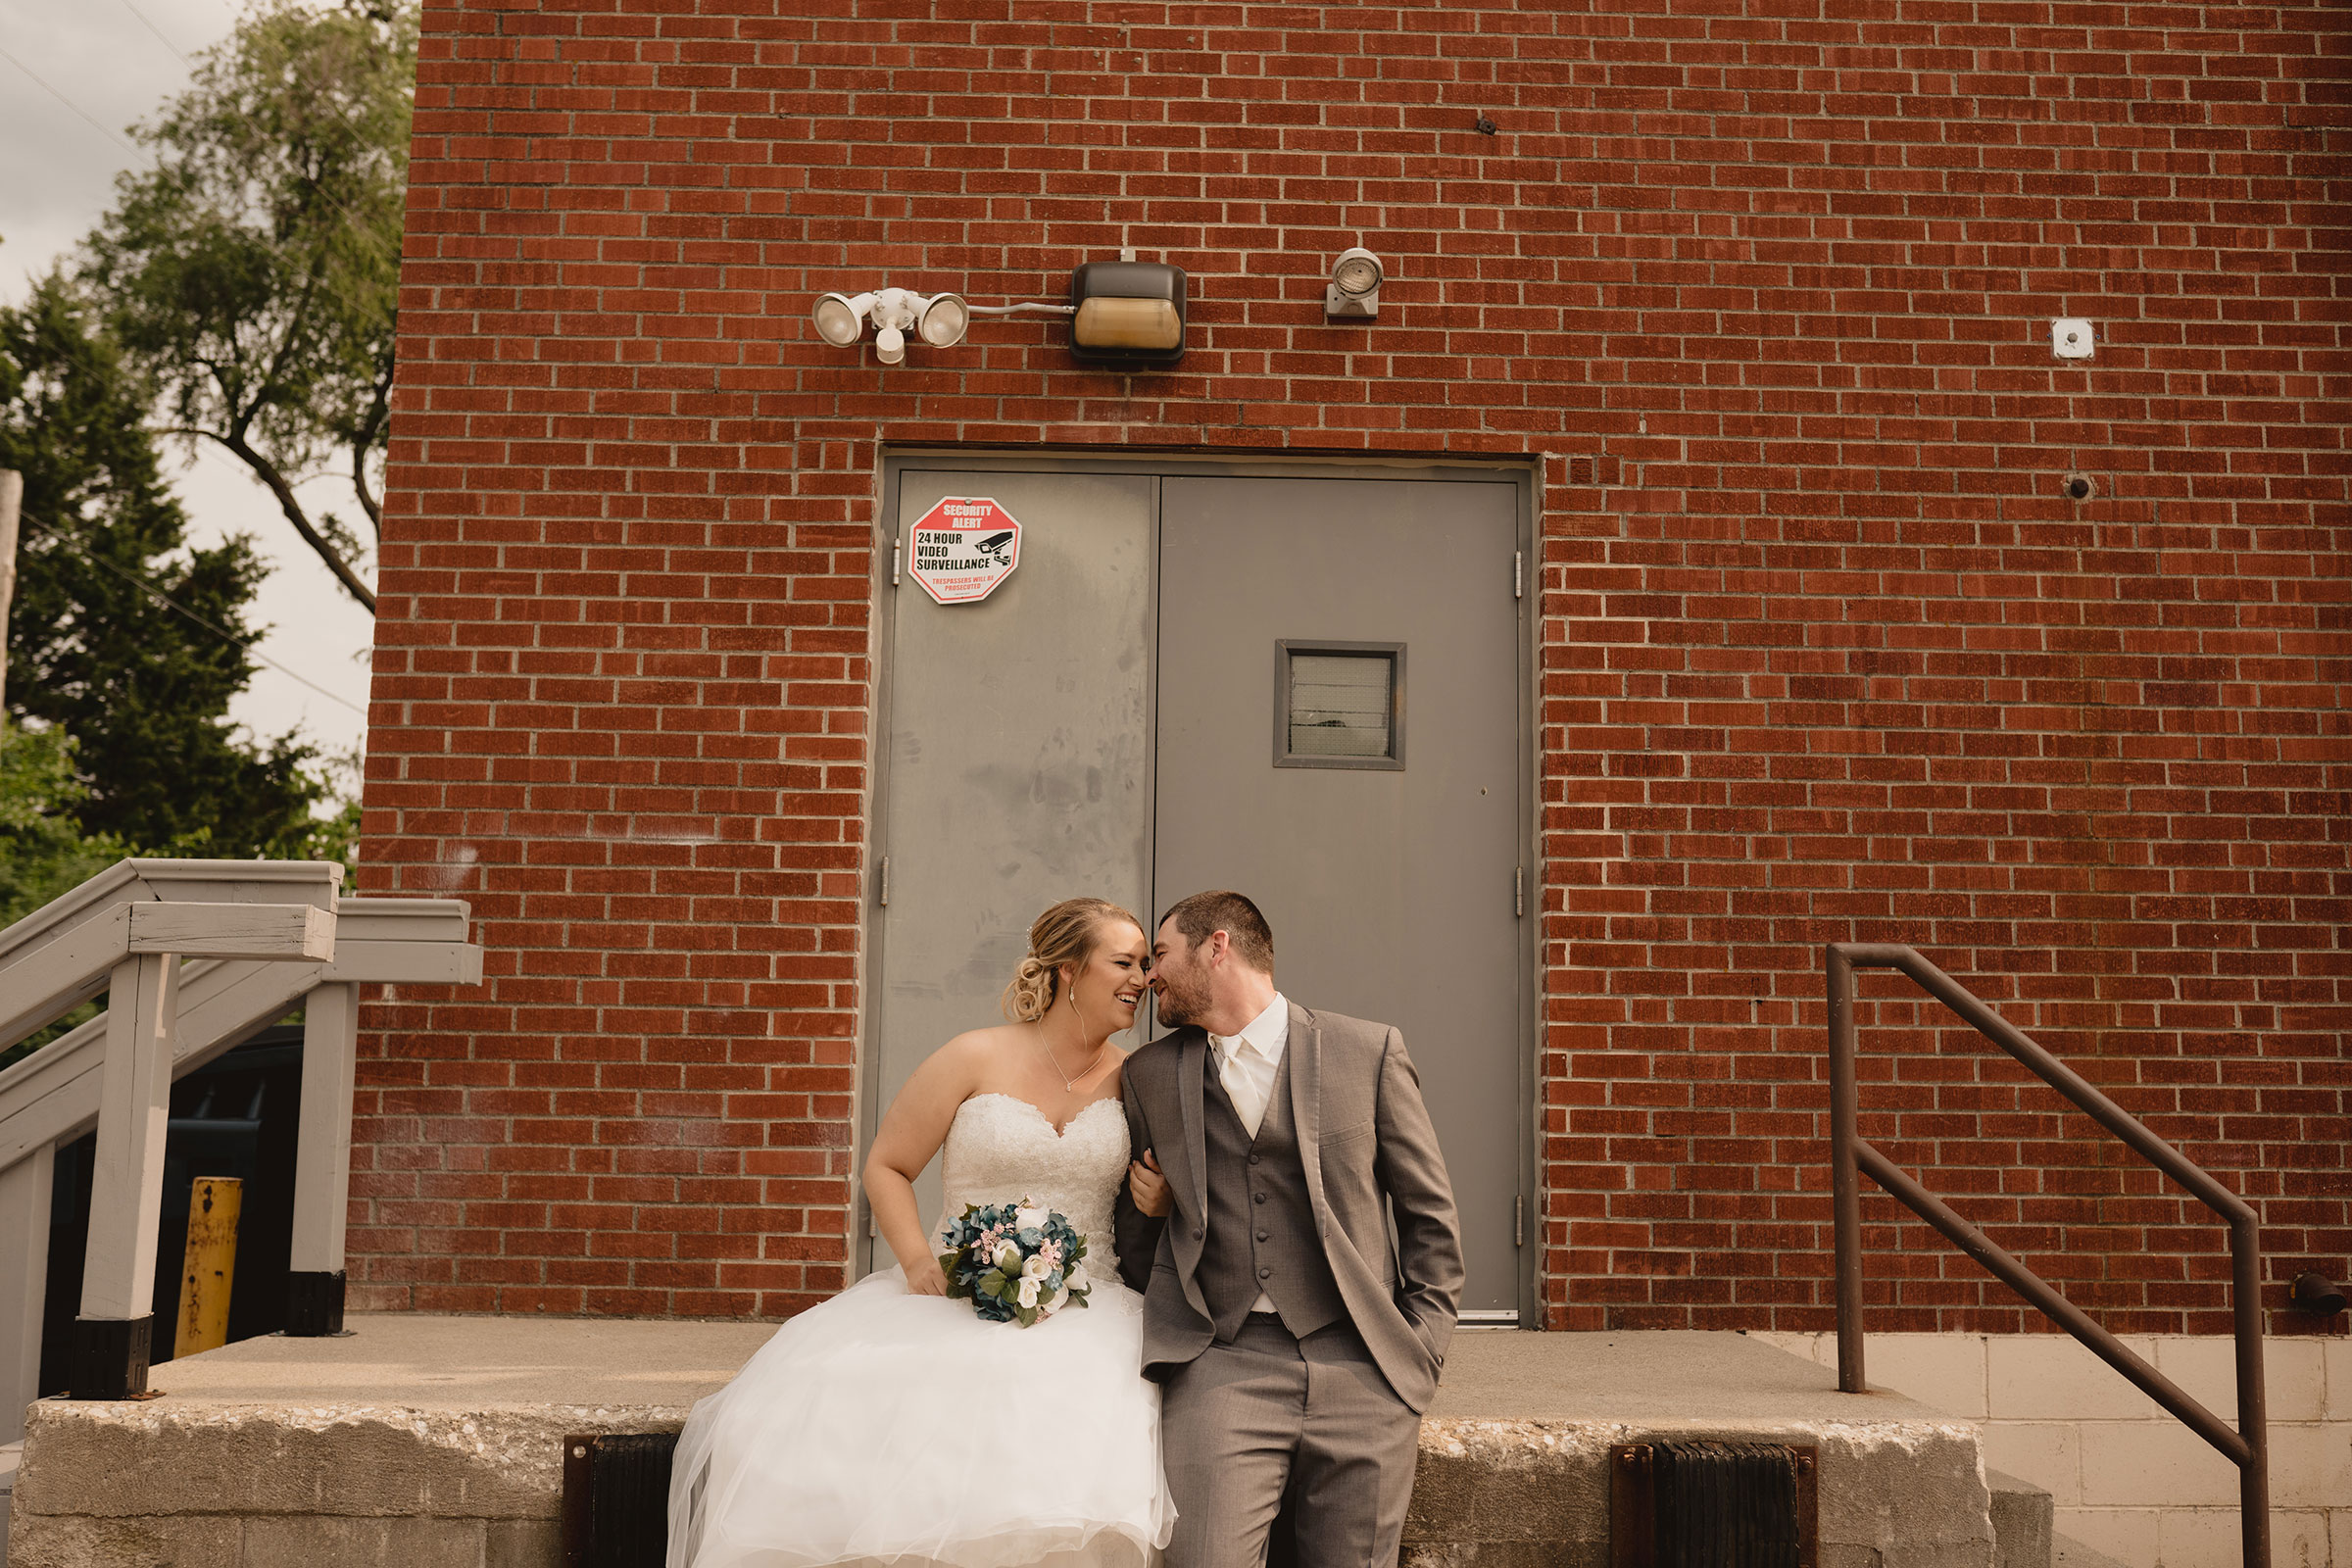 wedding-couple-laughing-sitting-on-concrete-decades-event-center-building-desmoines-iowa-raelyn-ramey-photography..jpg